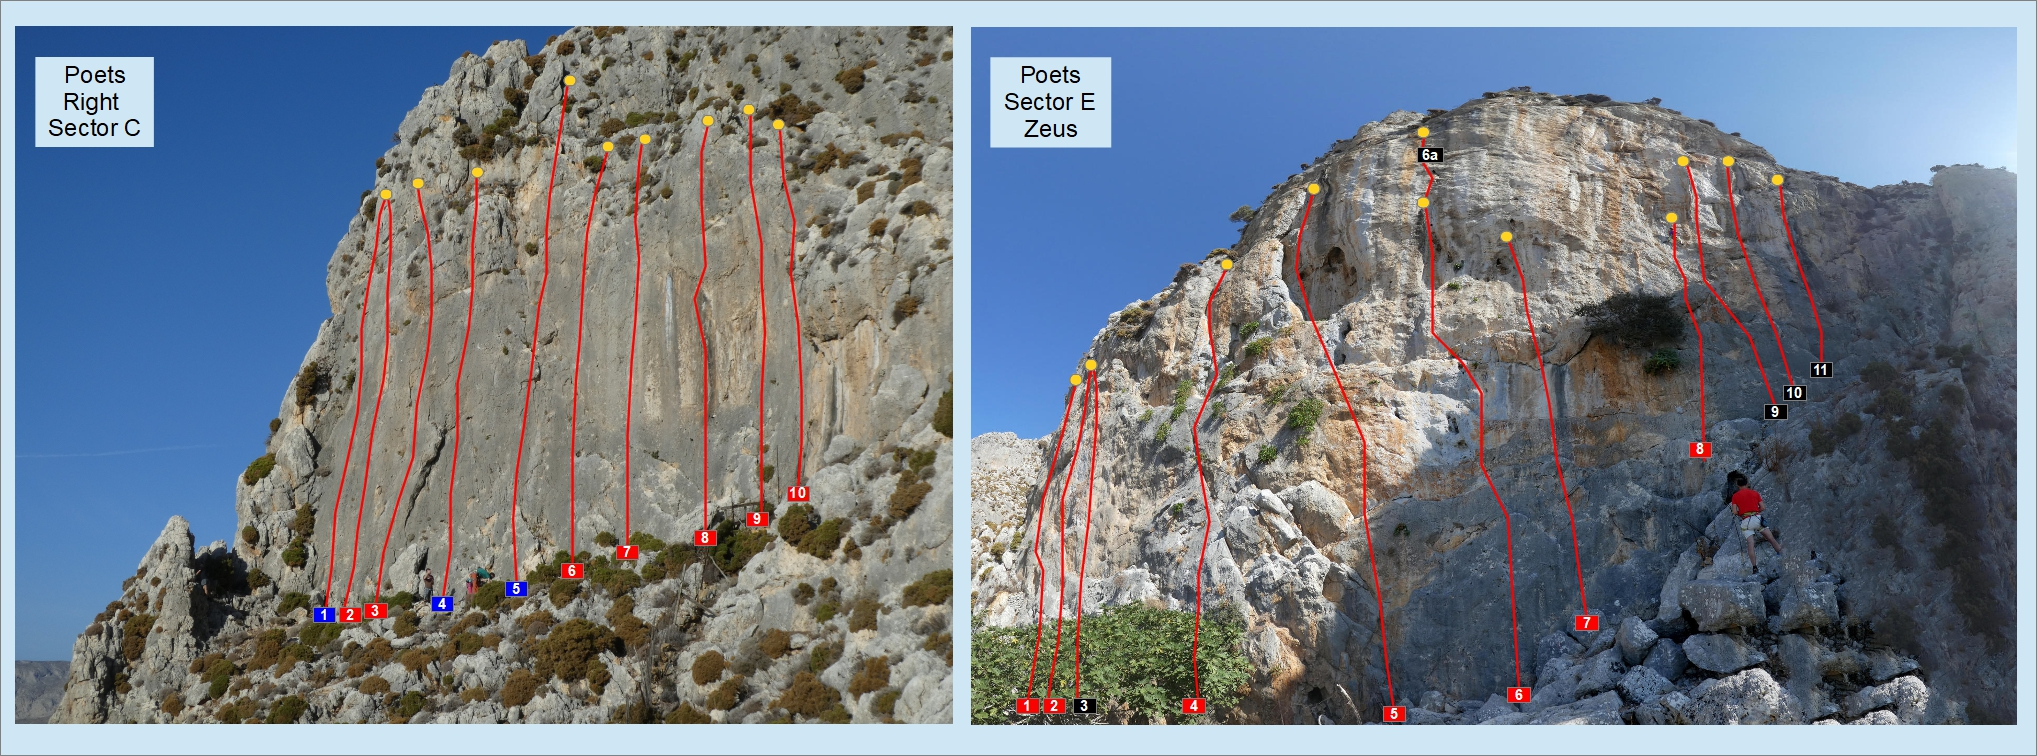 Climb Kalymnos Poets Right and Zeus topo